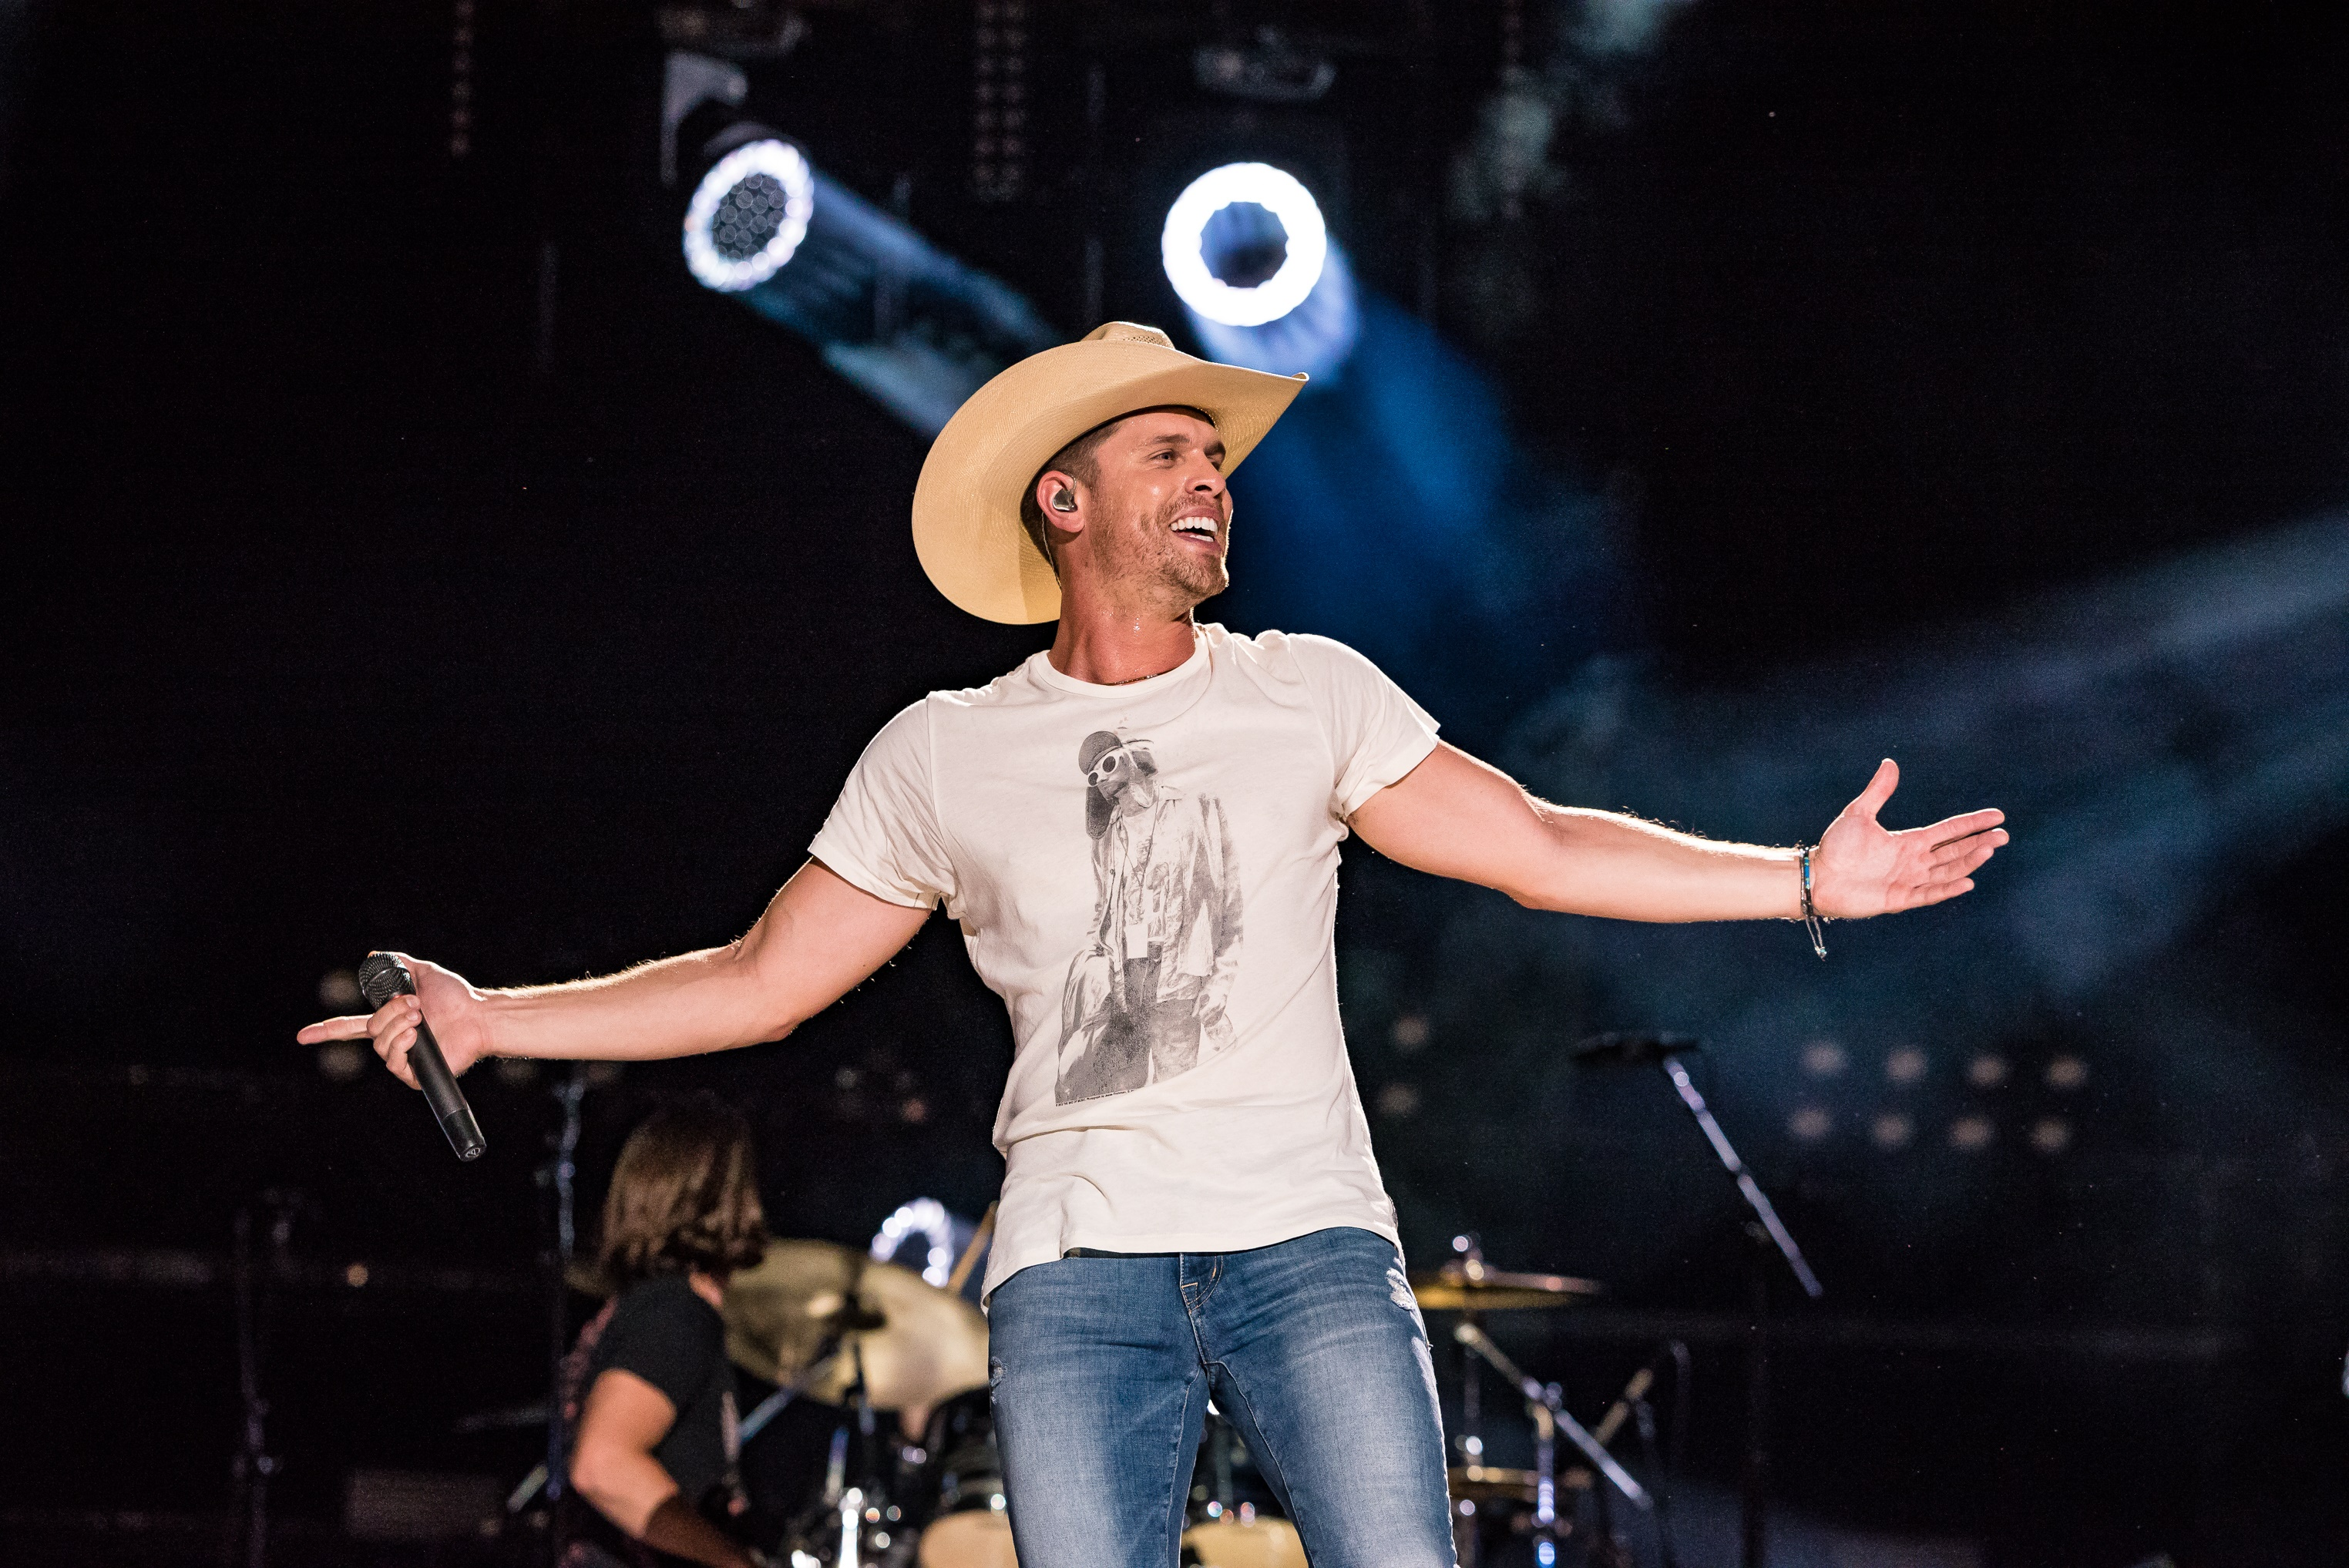 Dustin Lynch Uses His Daily Instagram Videos As a Vent Session With Fans